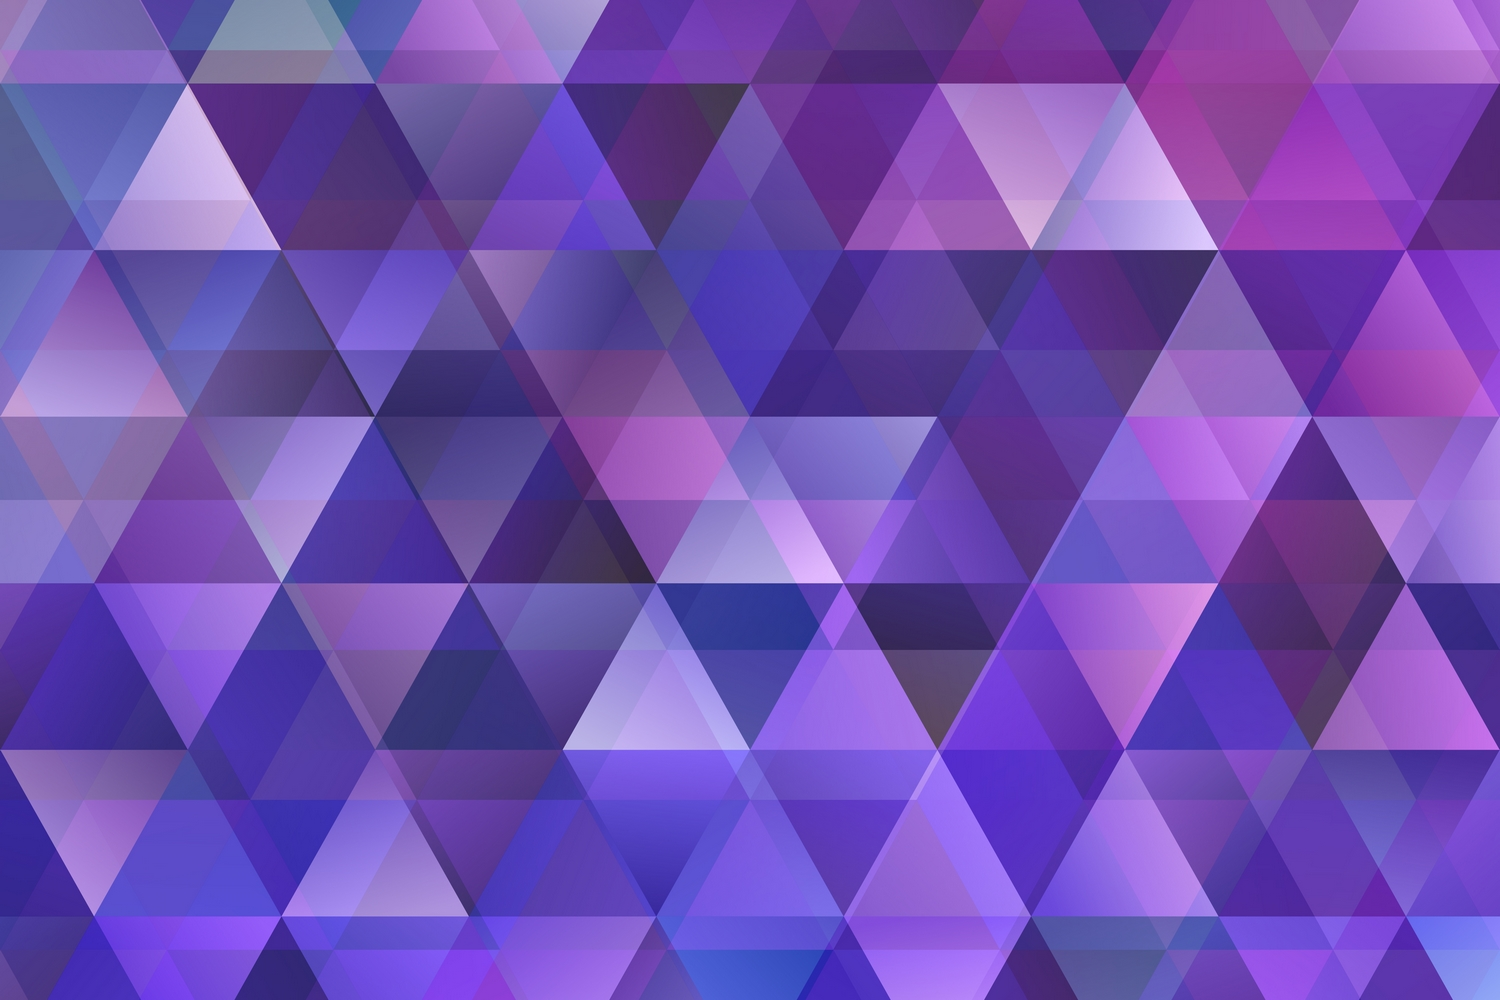 24 Gradient Polygon Backgrounds AI, EPS, JPG 5000x5000 example image 13